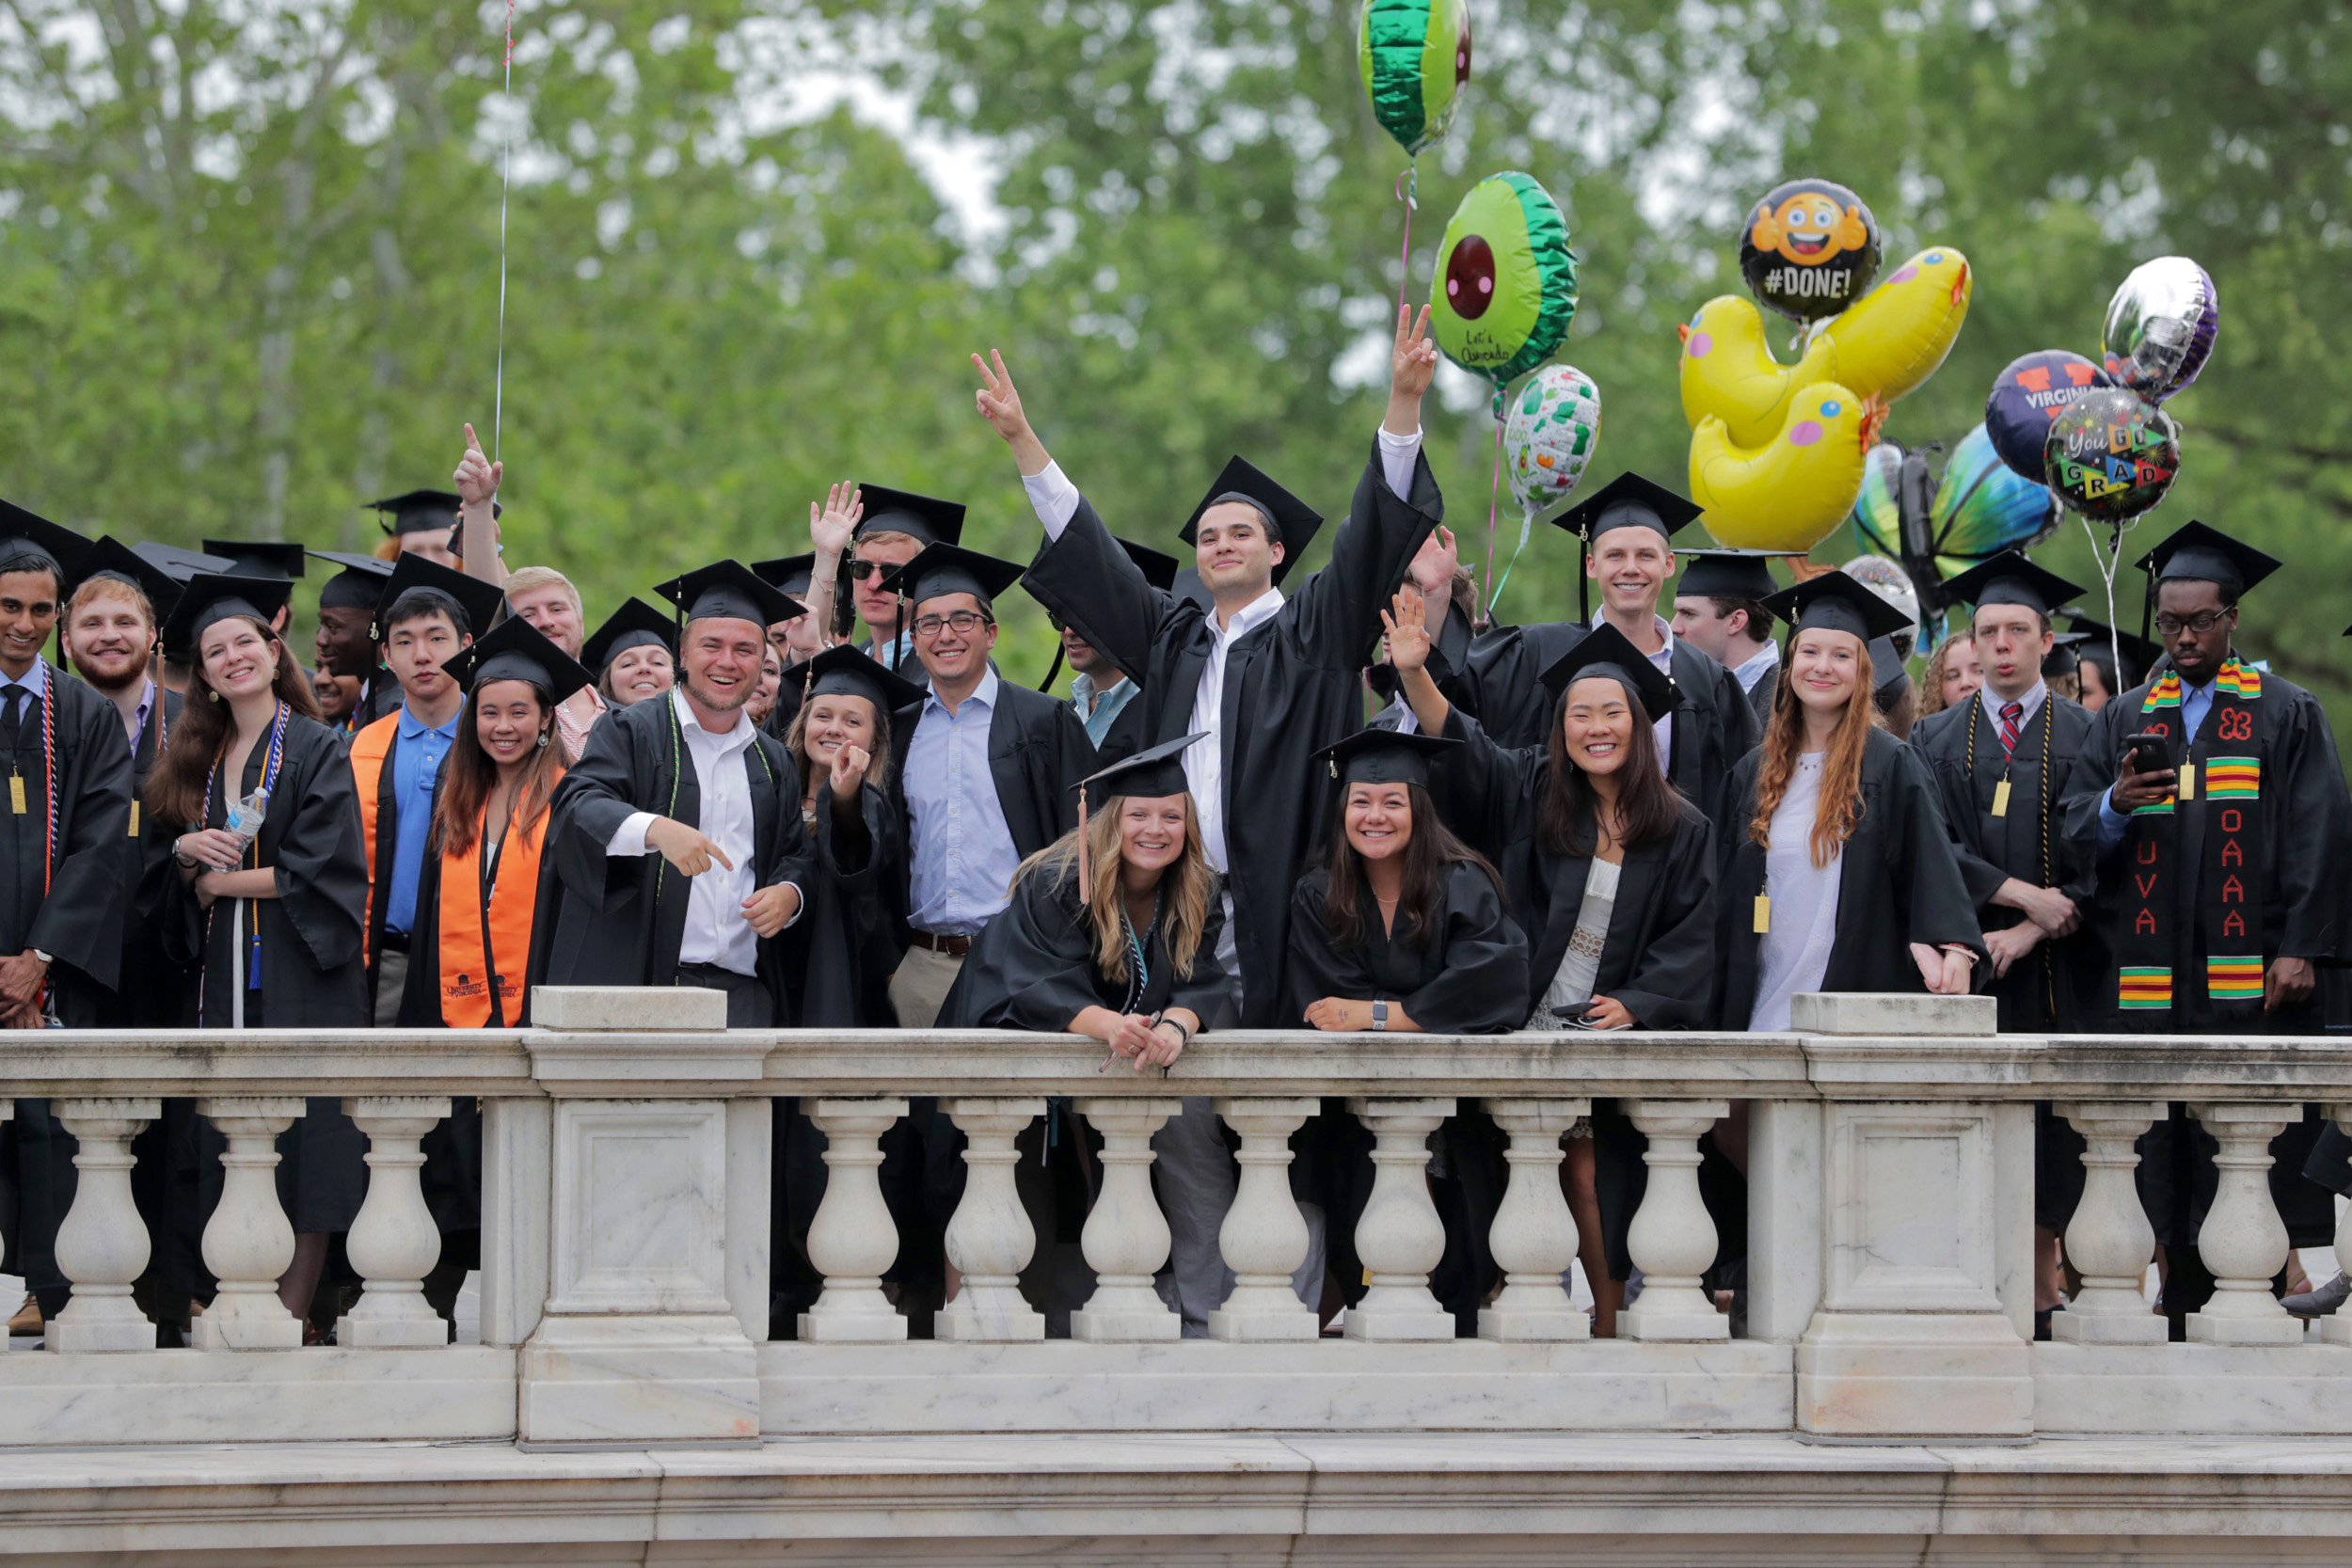 Graduates of the College and Graduate School of Arts and Sciences walked the Lawn on Saturday during the first of two days of Final Exercises 2019. (Photos by Dan Addison, Sanjay Suchak, Shannon Reres and Kristen Finn)